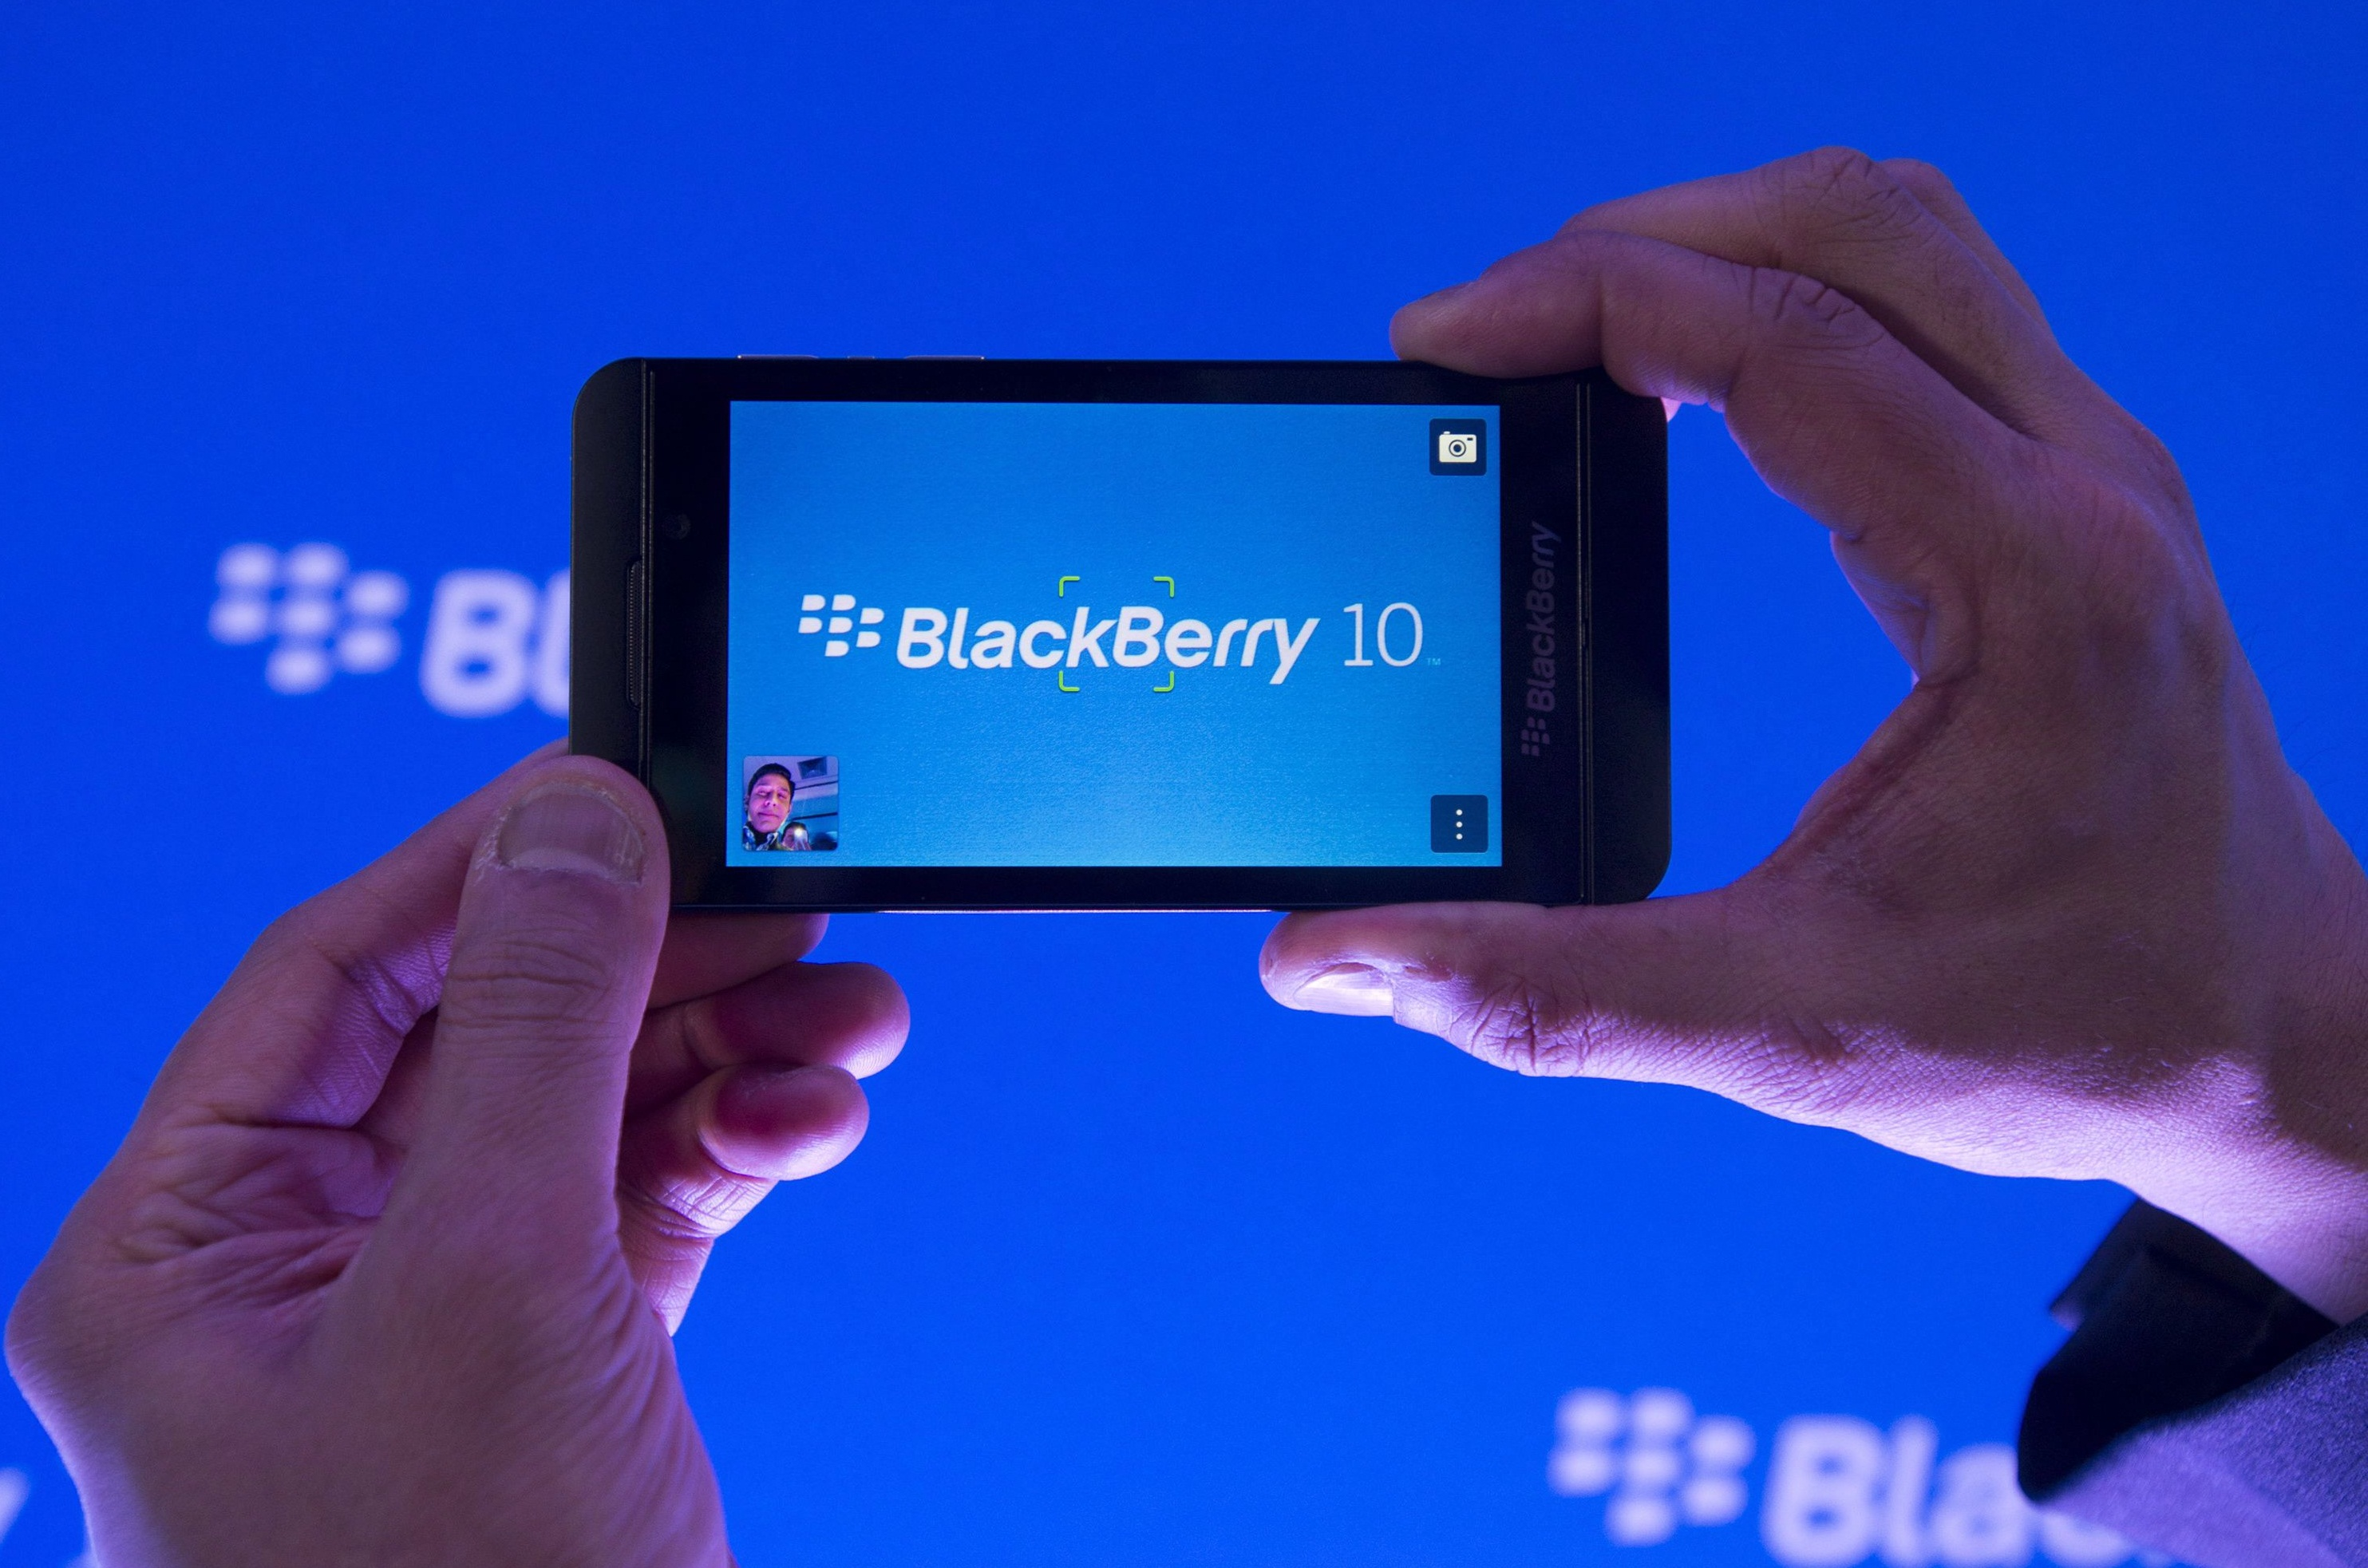 how to make blackberry faster on the internet